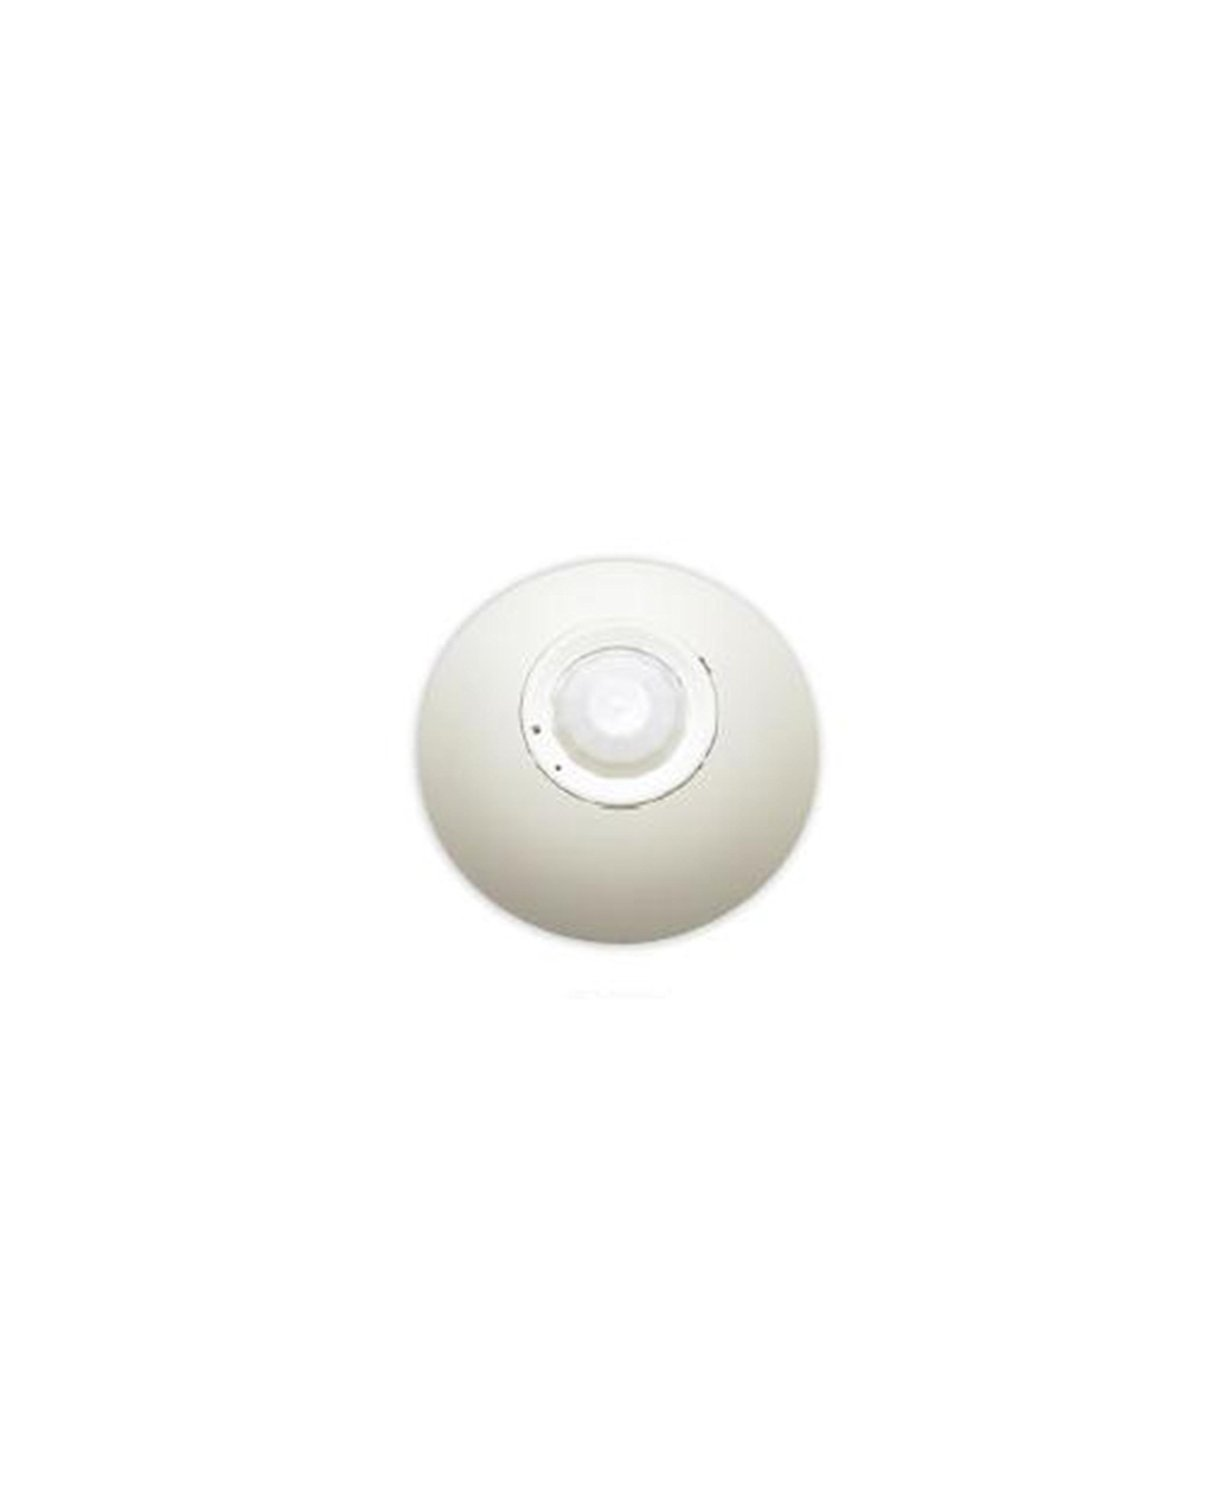 Hubbell Building Automation OMNIIR Digital Passive Infrared Ceiling Occupancy Sensor, 450-Square-foot Range